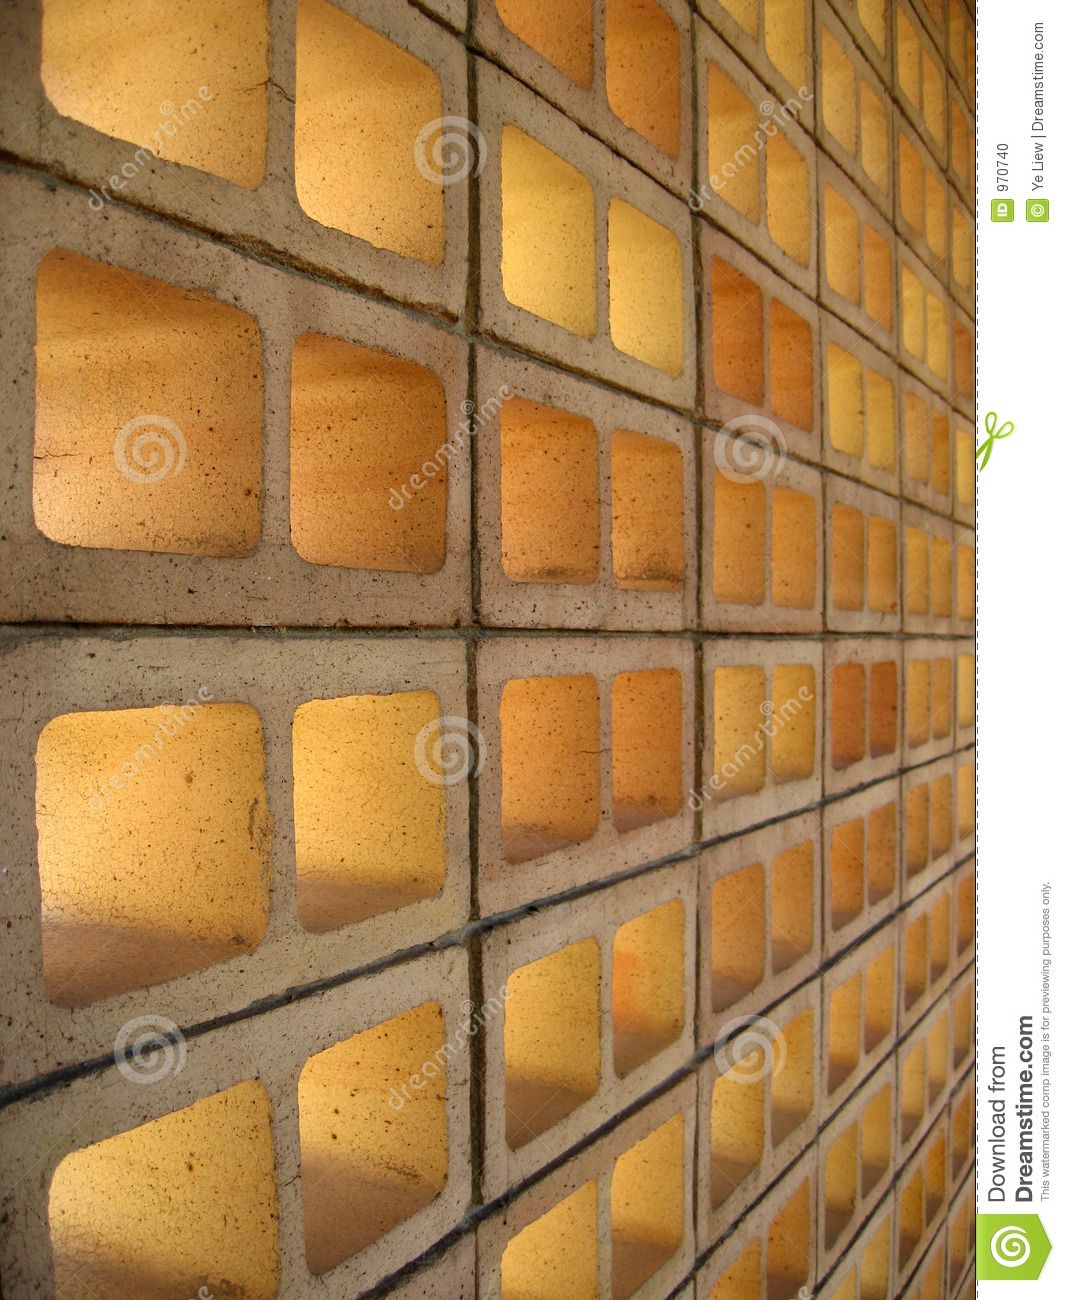 Hollow Bricks Stock Photo Image Of Partition Barrier